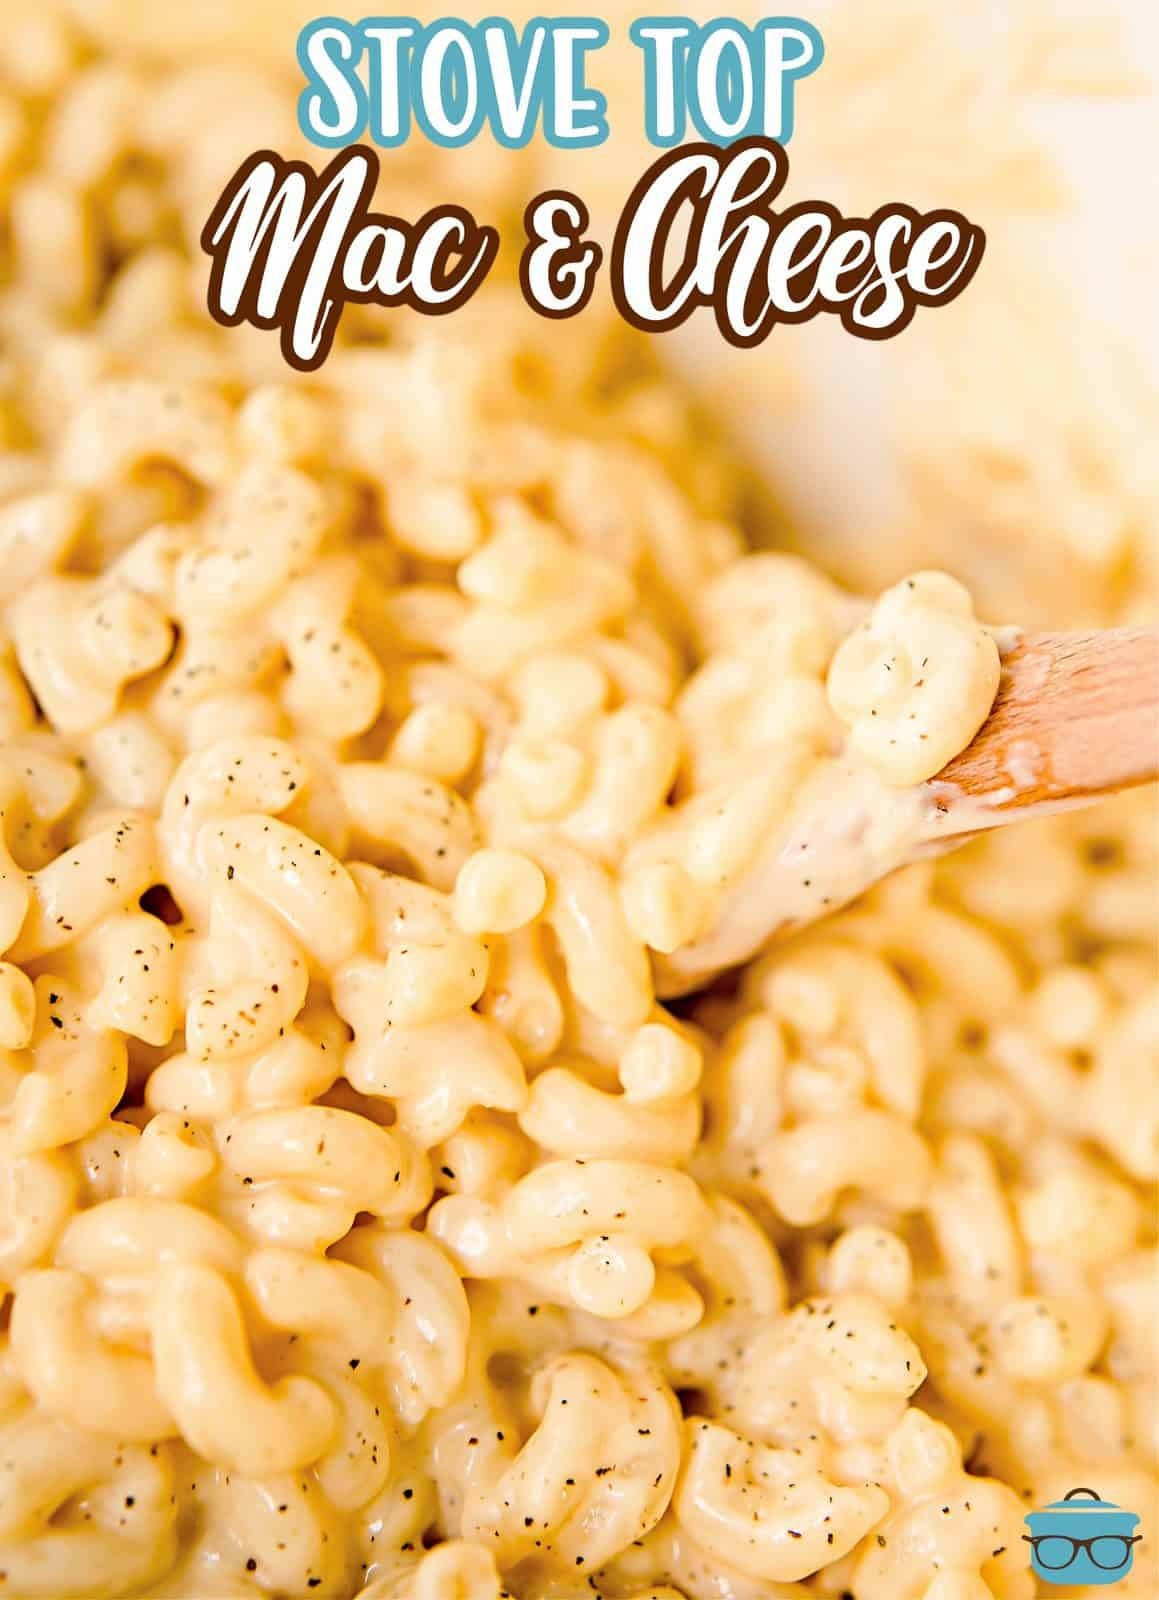 Pinterest image of finished Macaroni and Cheese being lifted with wooden spoon.